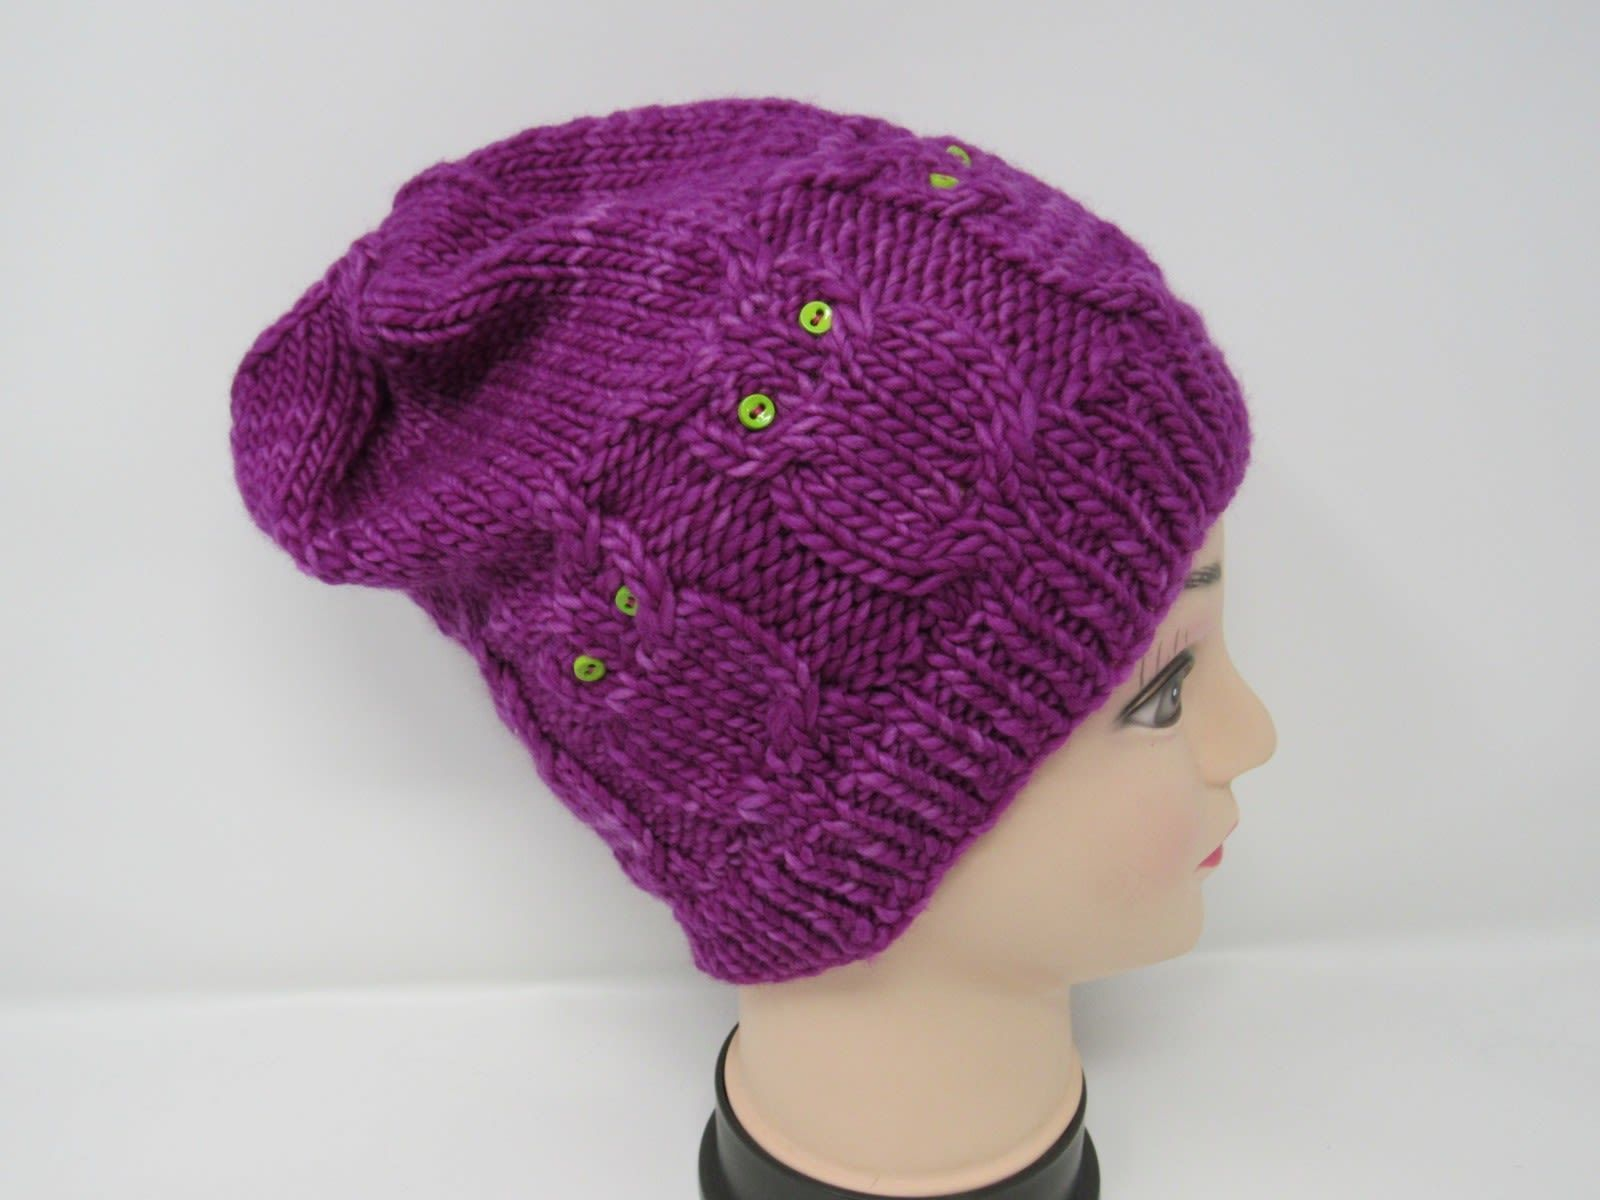 Handcrafted Knitted Hat Beanie Violet Owls Buttons 100% Merino Wool Female Adult